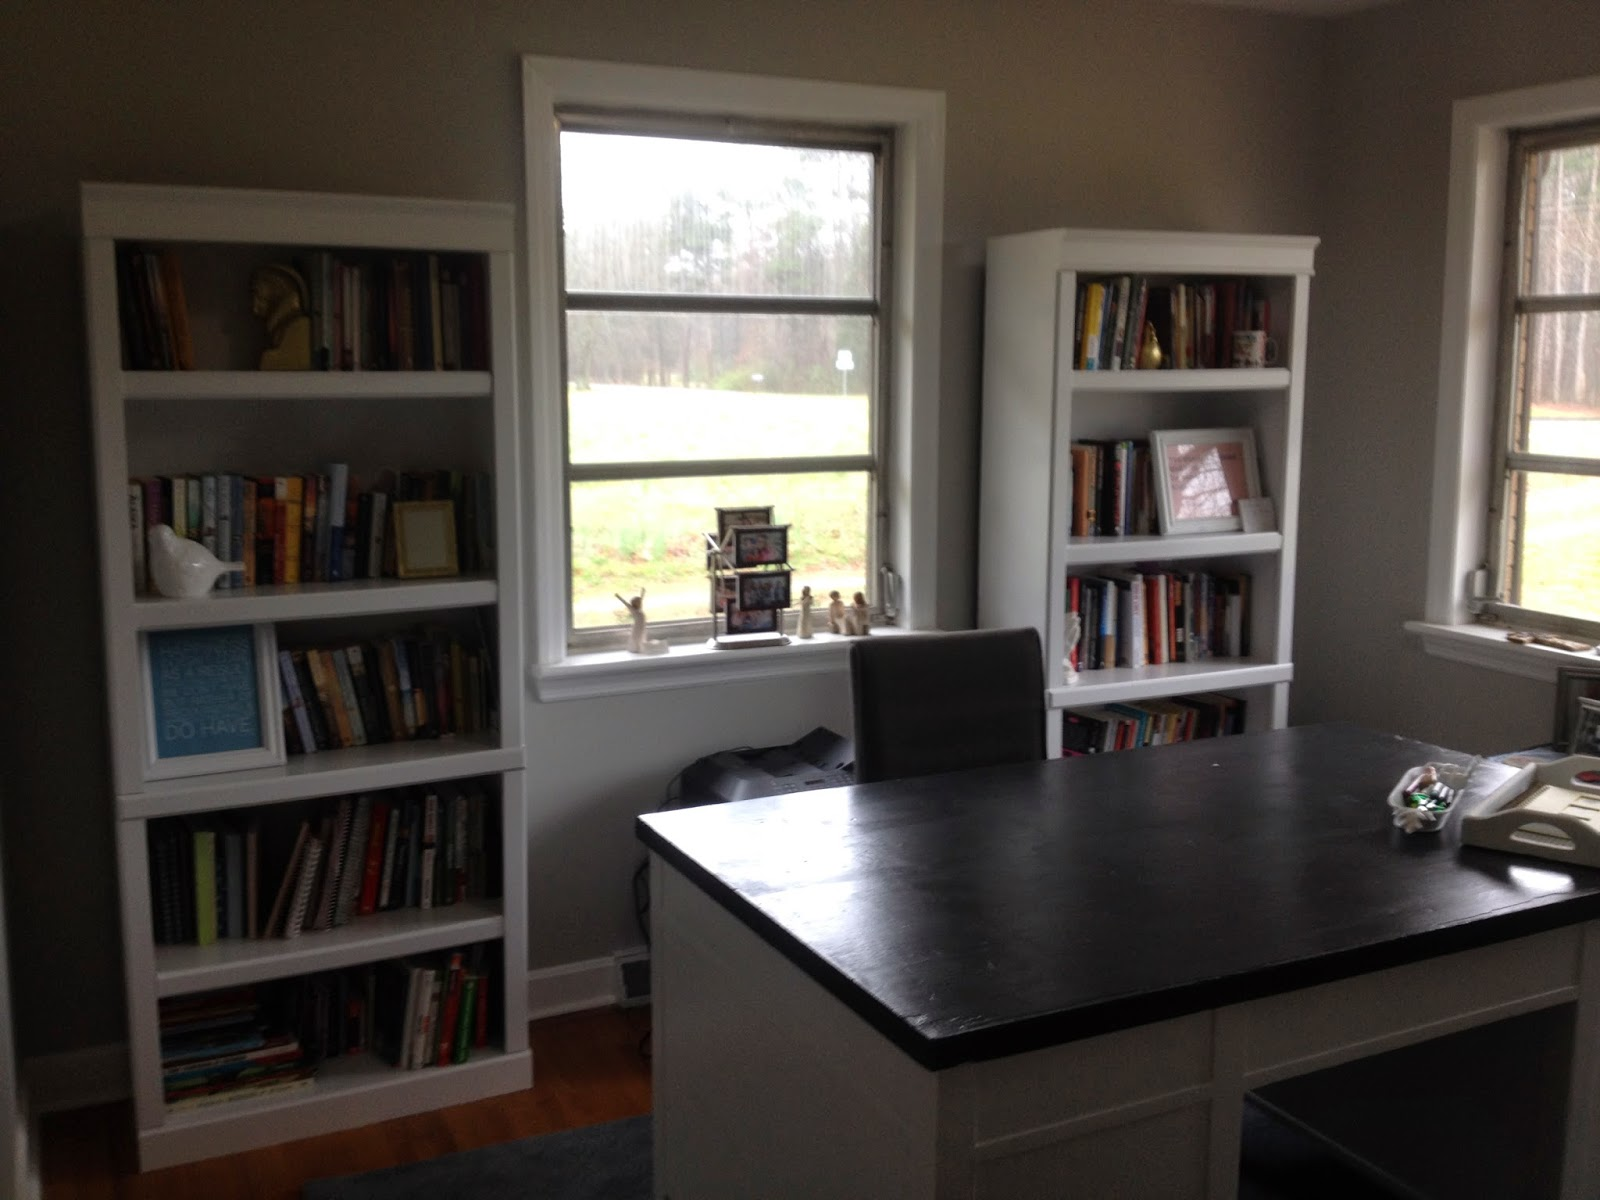 Marvelous photograph of Blissfully Chic DIY: Painting Laminate Bookshelves Dark to Bright! with #797152 color and 1600x1200 pixels